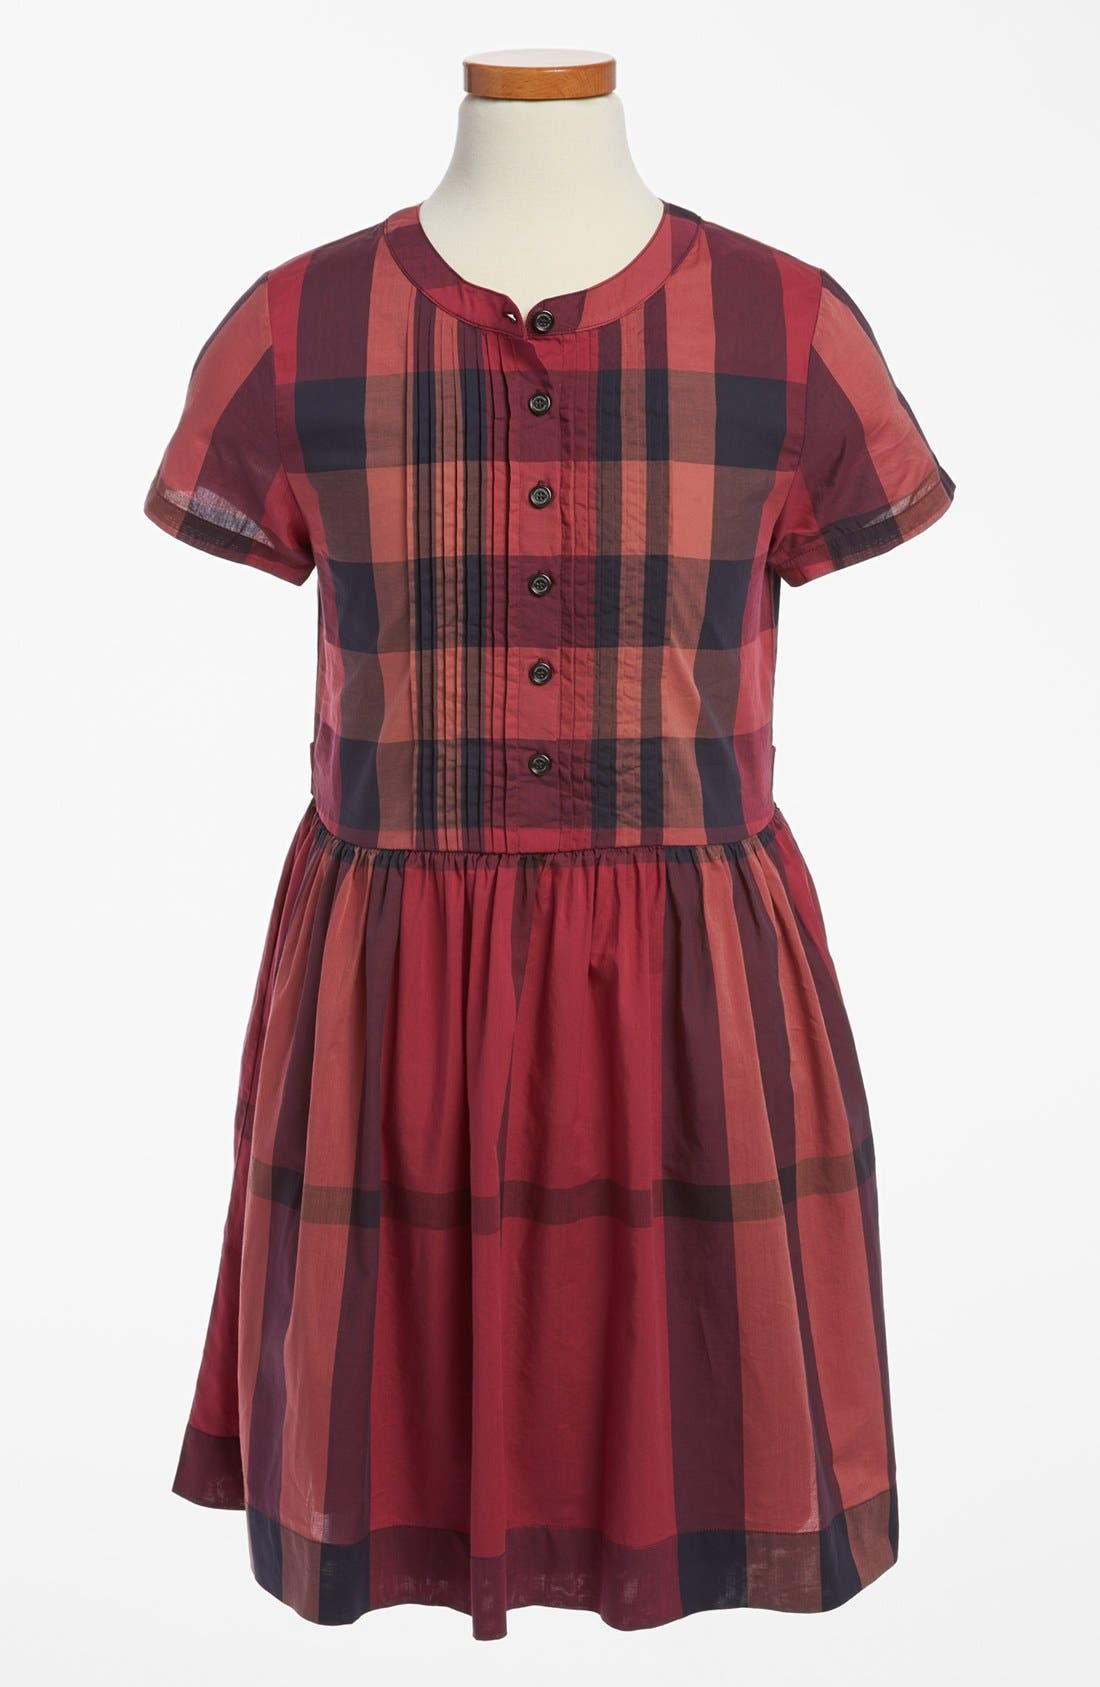 Main Image - Burberry 'Dally' Dress (Little Girls & Big Girls)